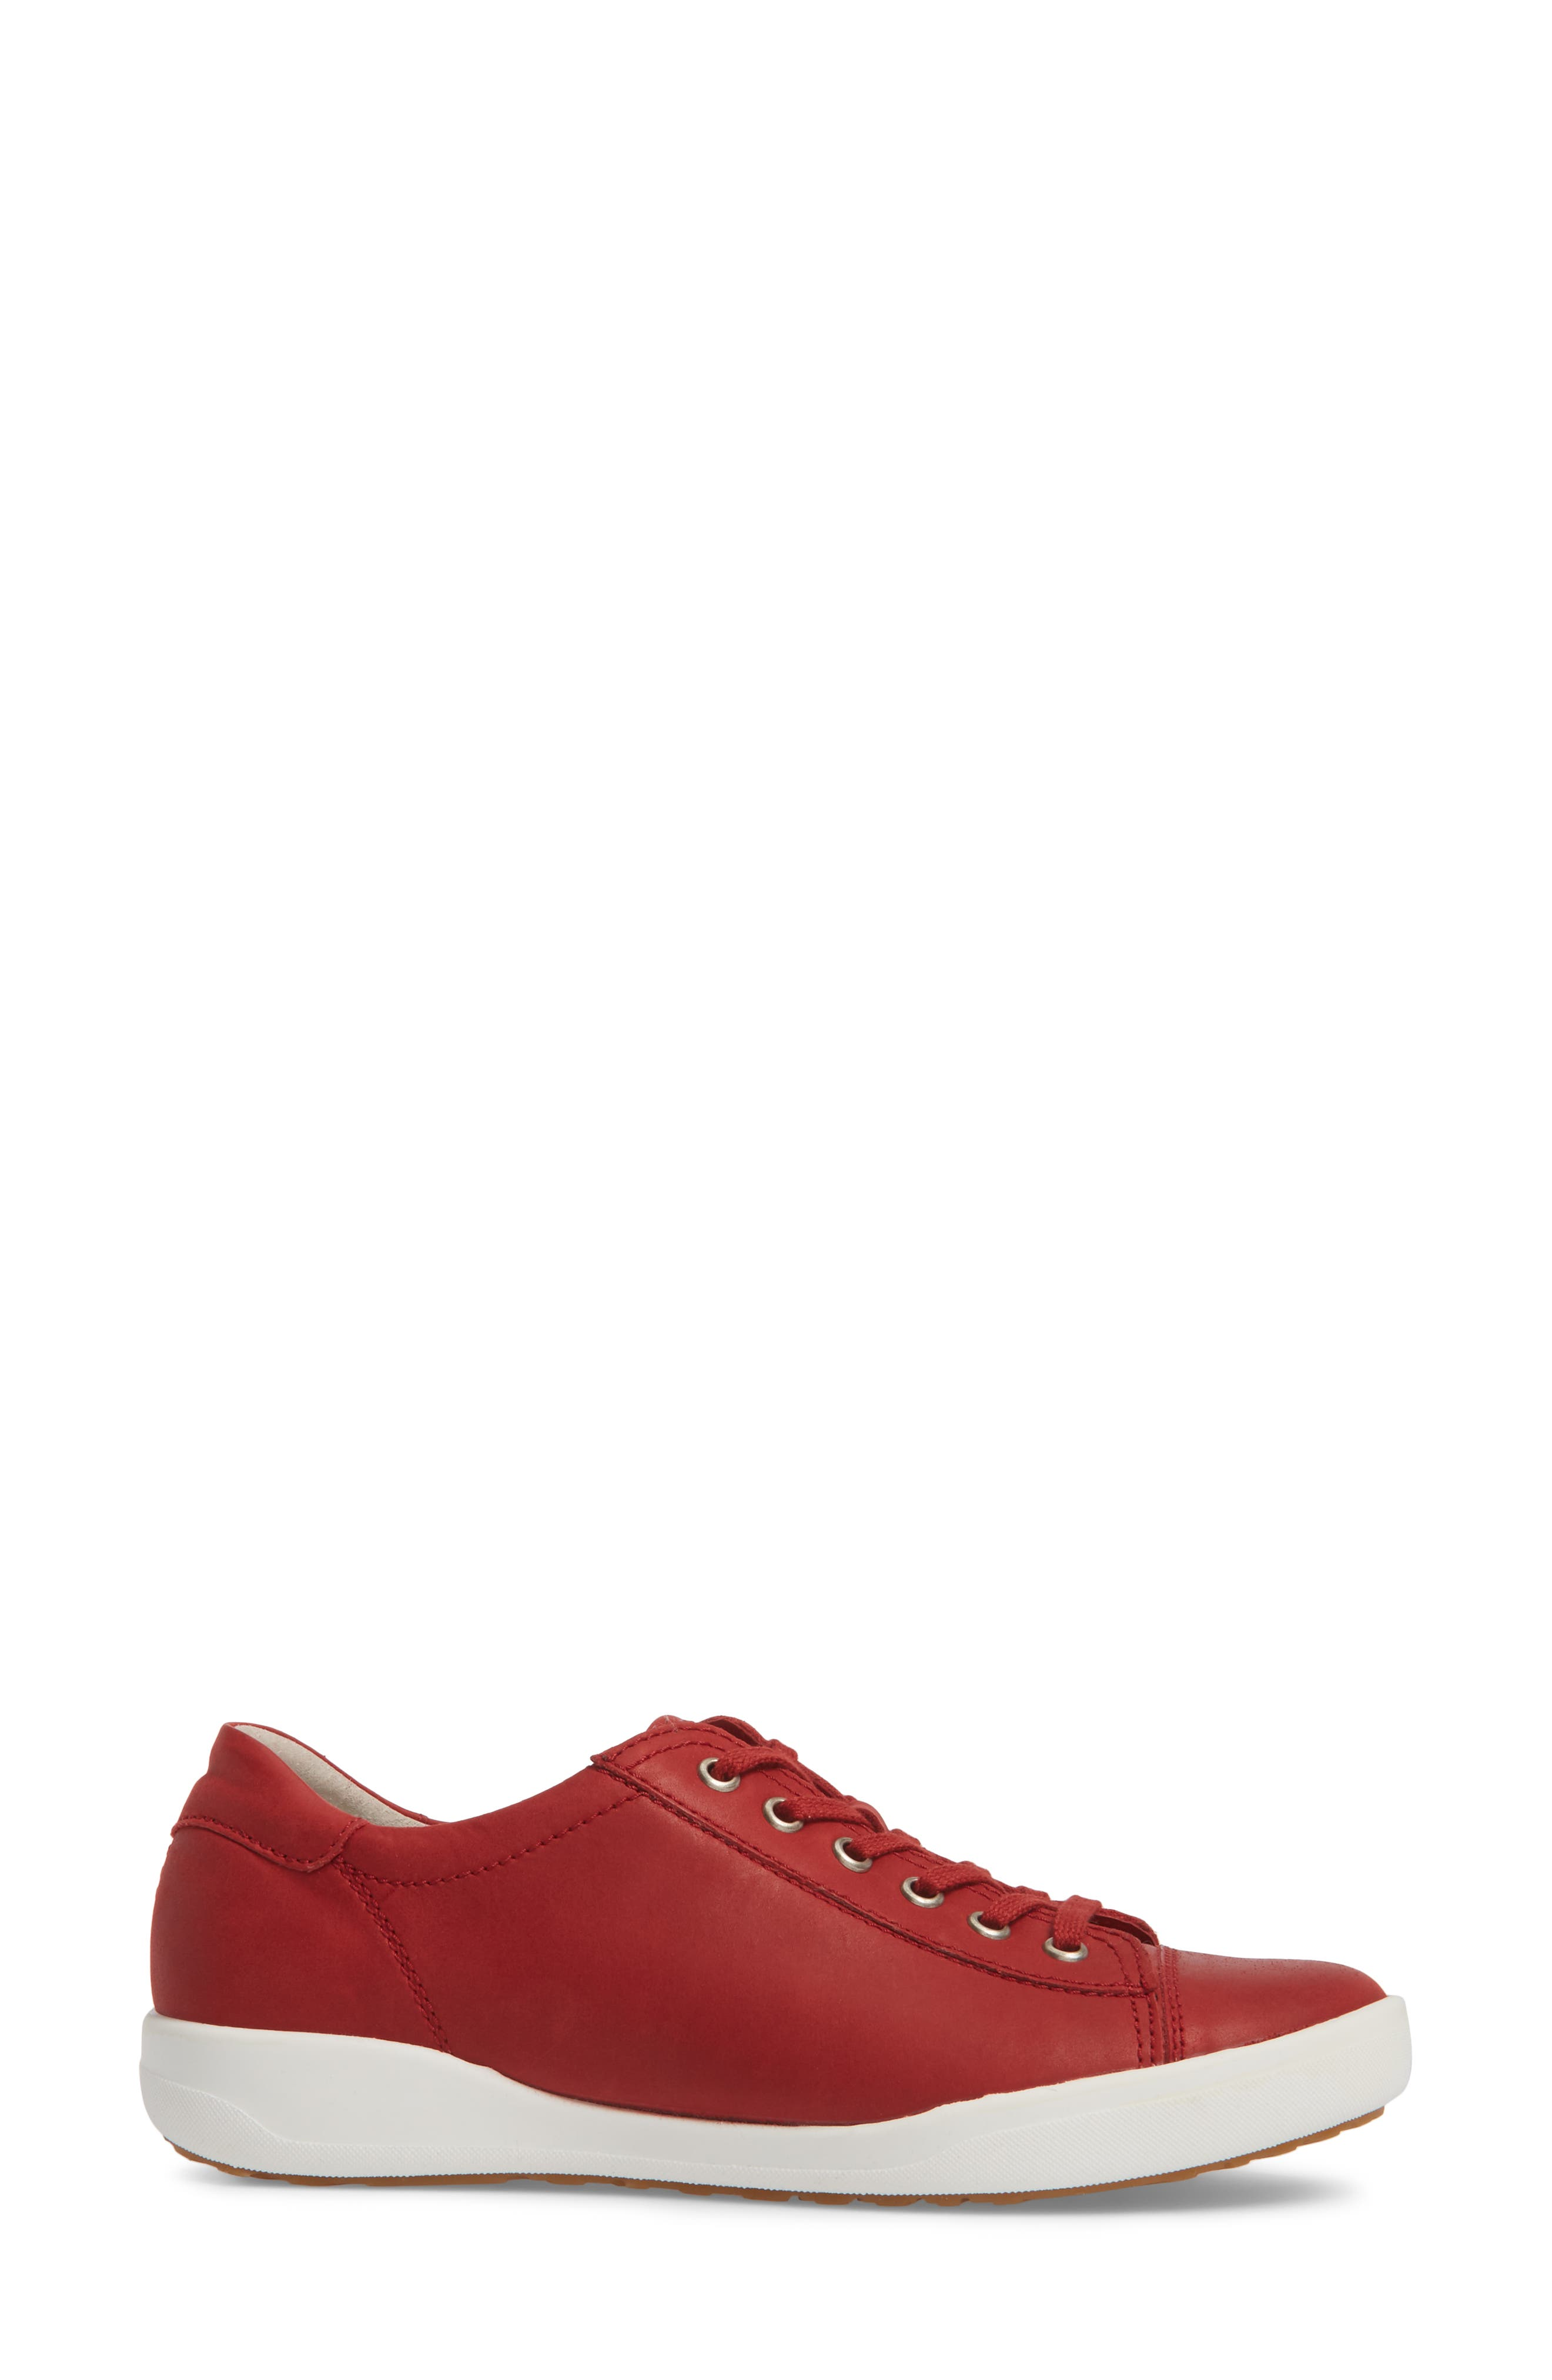 Sina 11 Sneaker,                             Alternate thumbnail 3, color,                             RED LEATHER 2